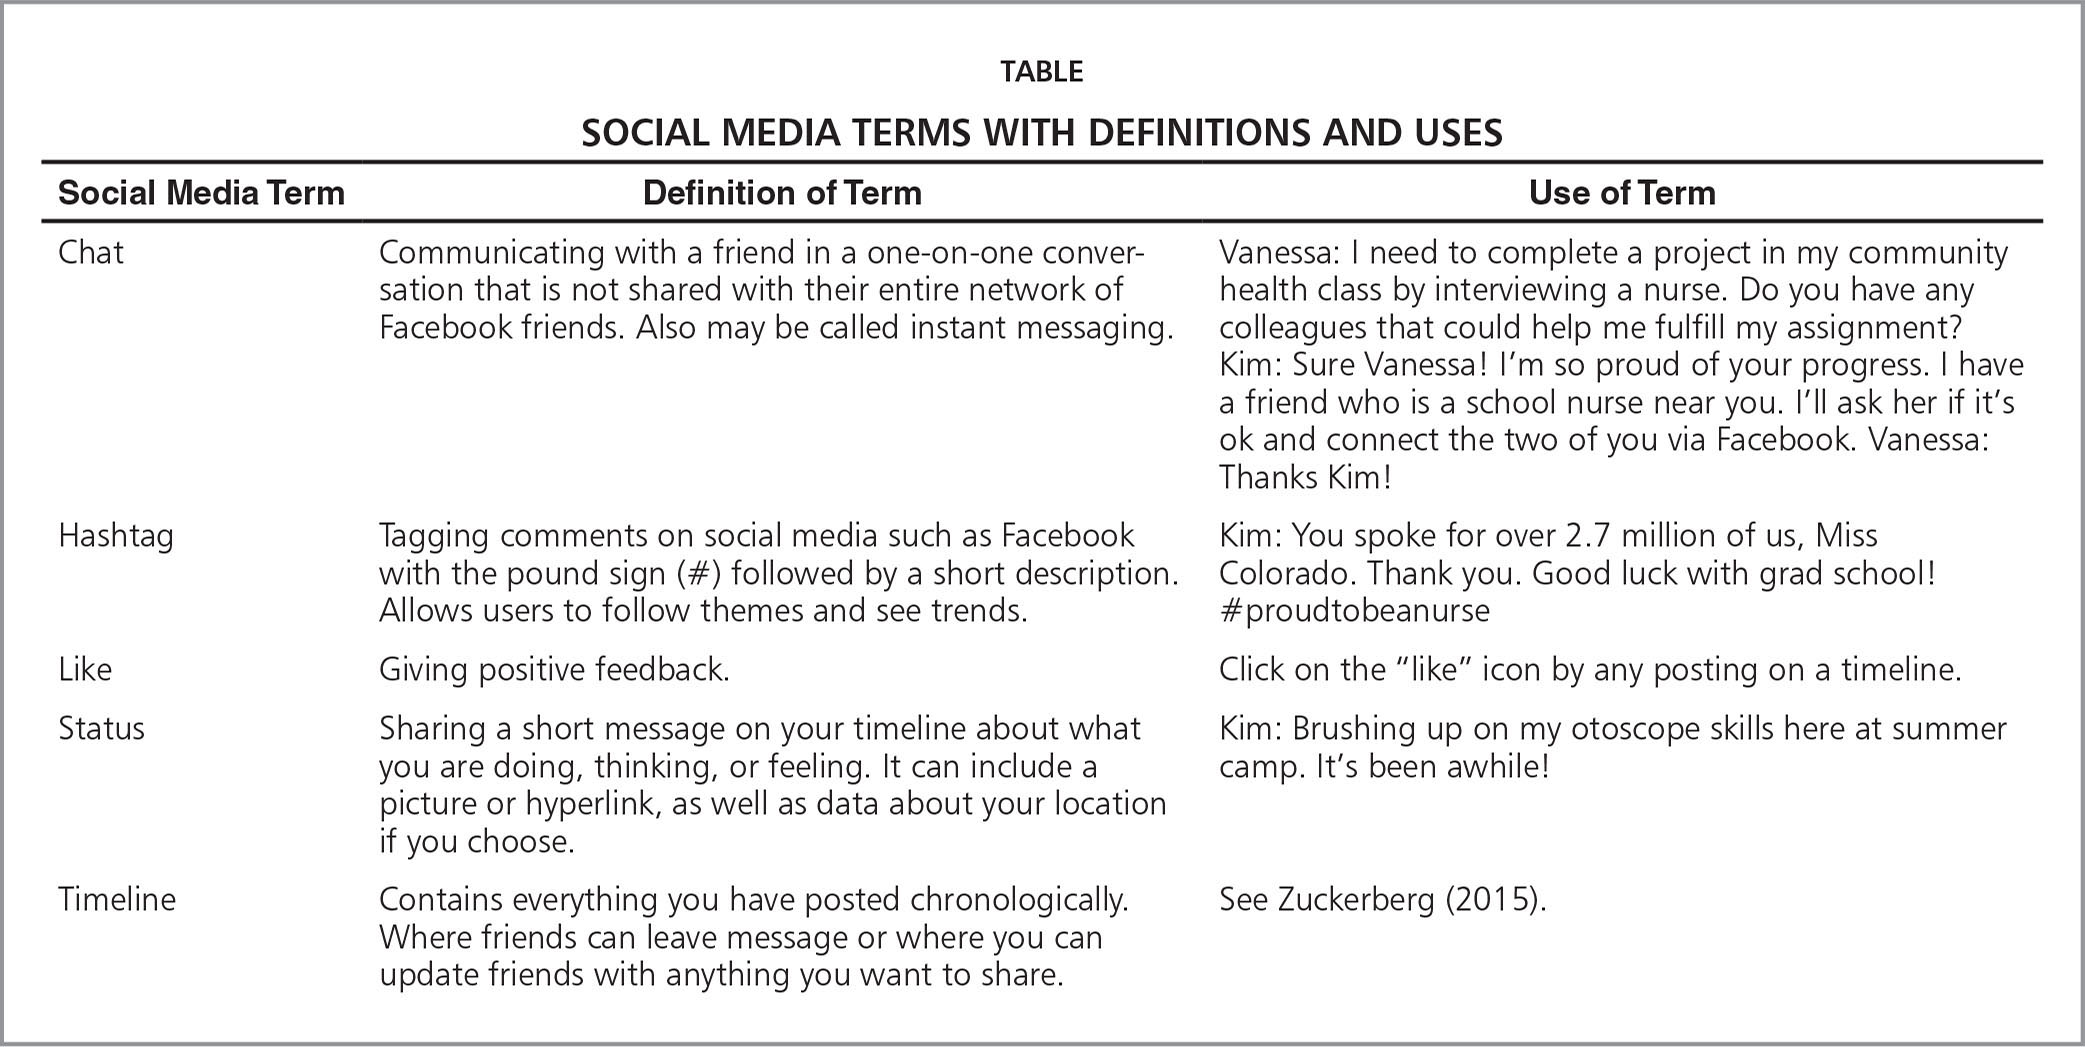 Social Media Terms with Definitions and Uses